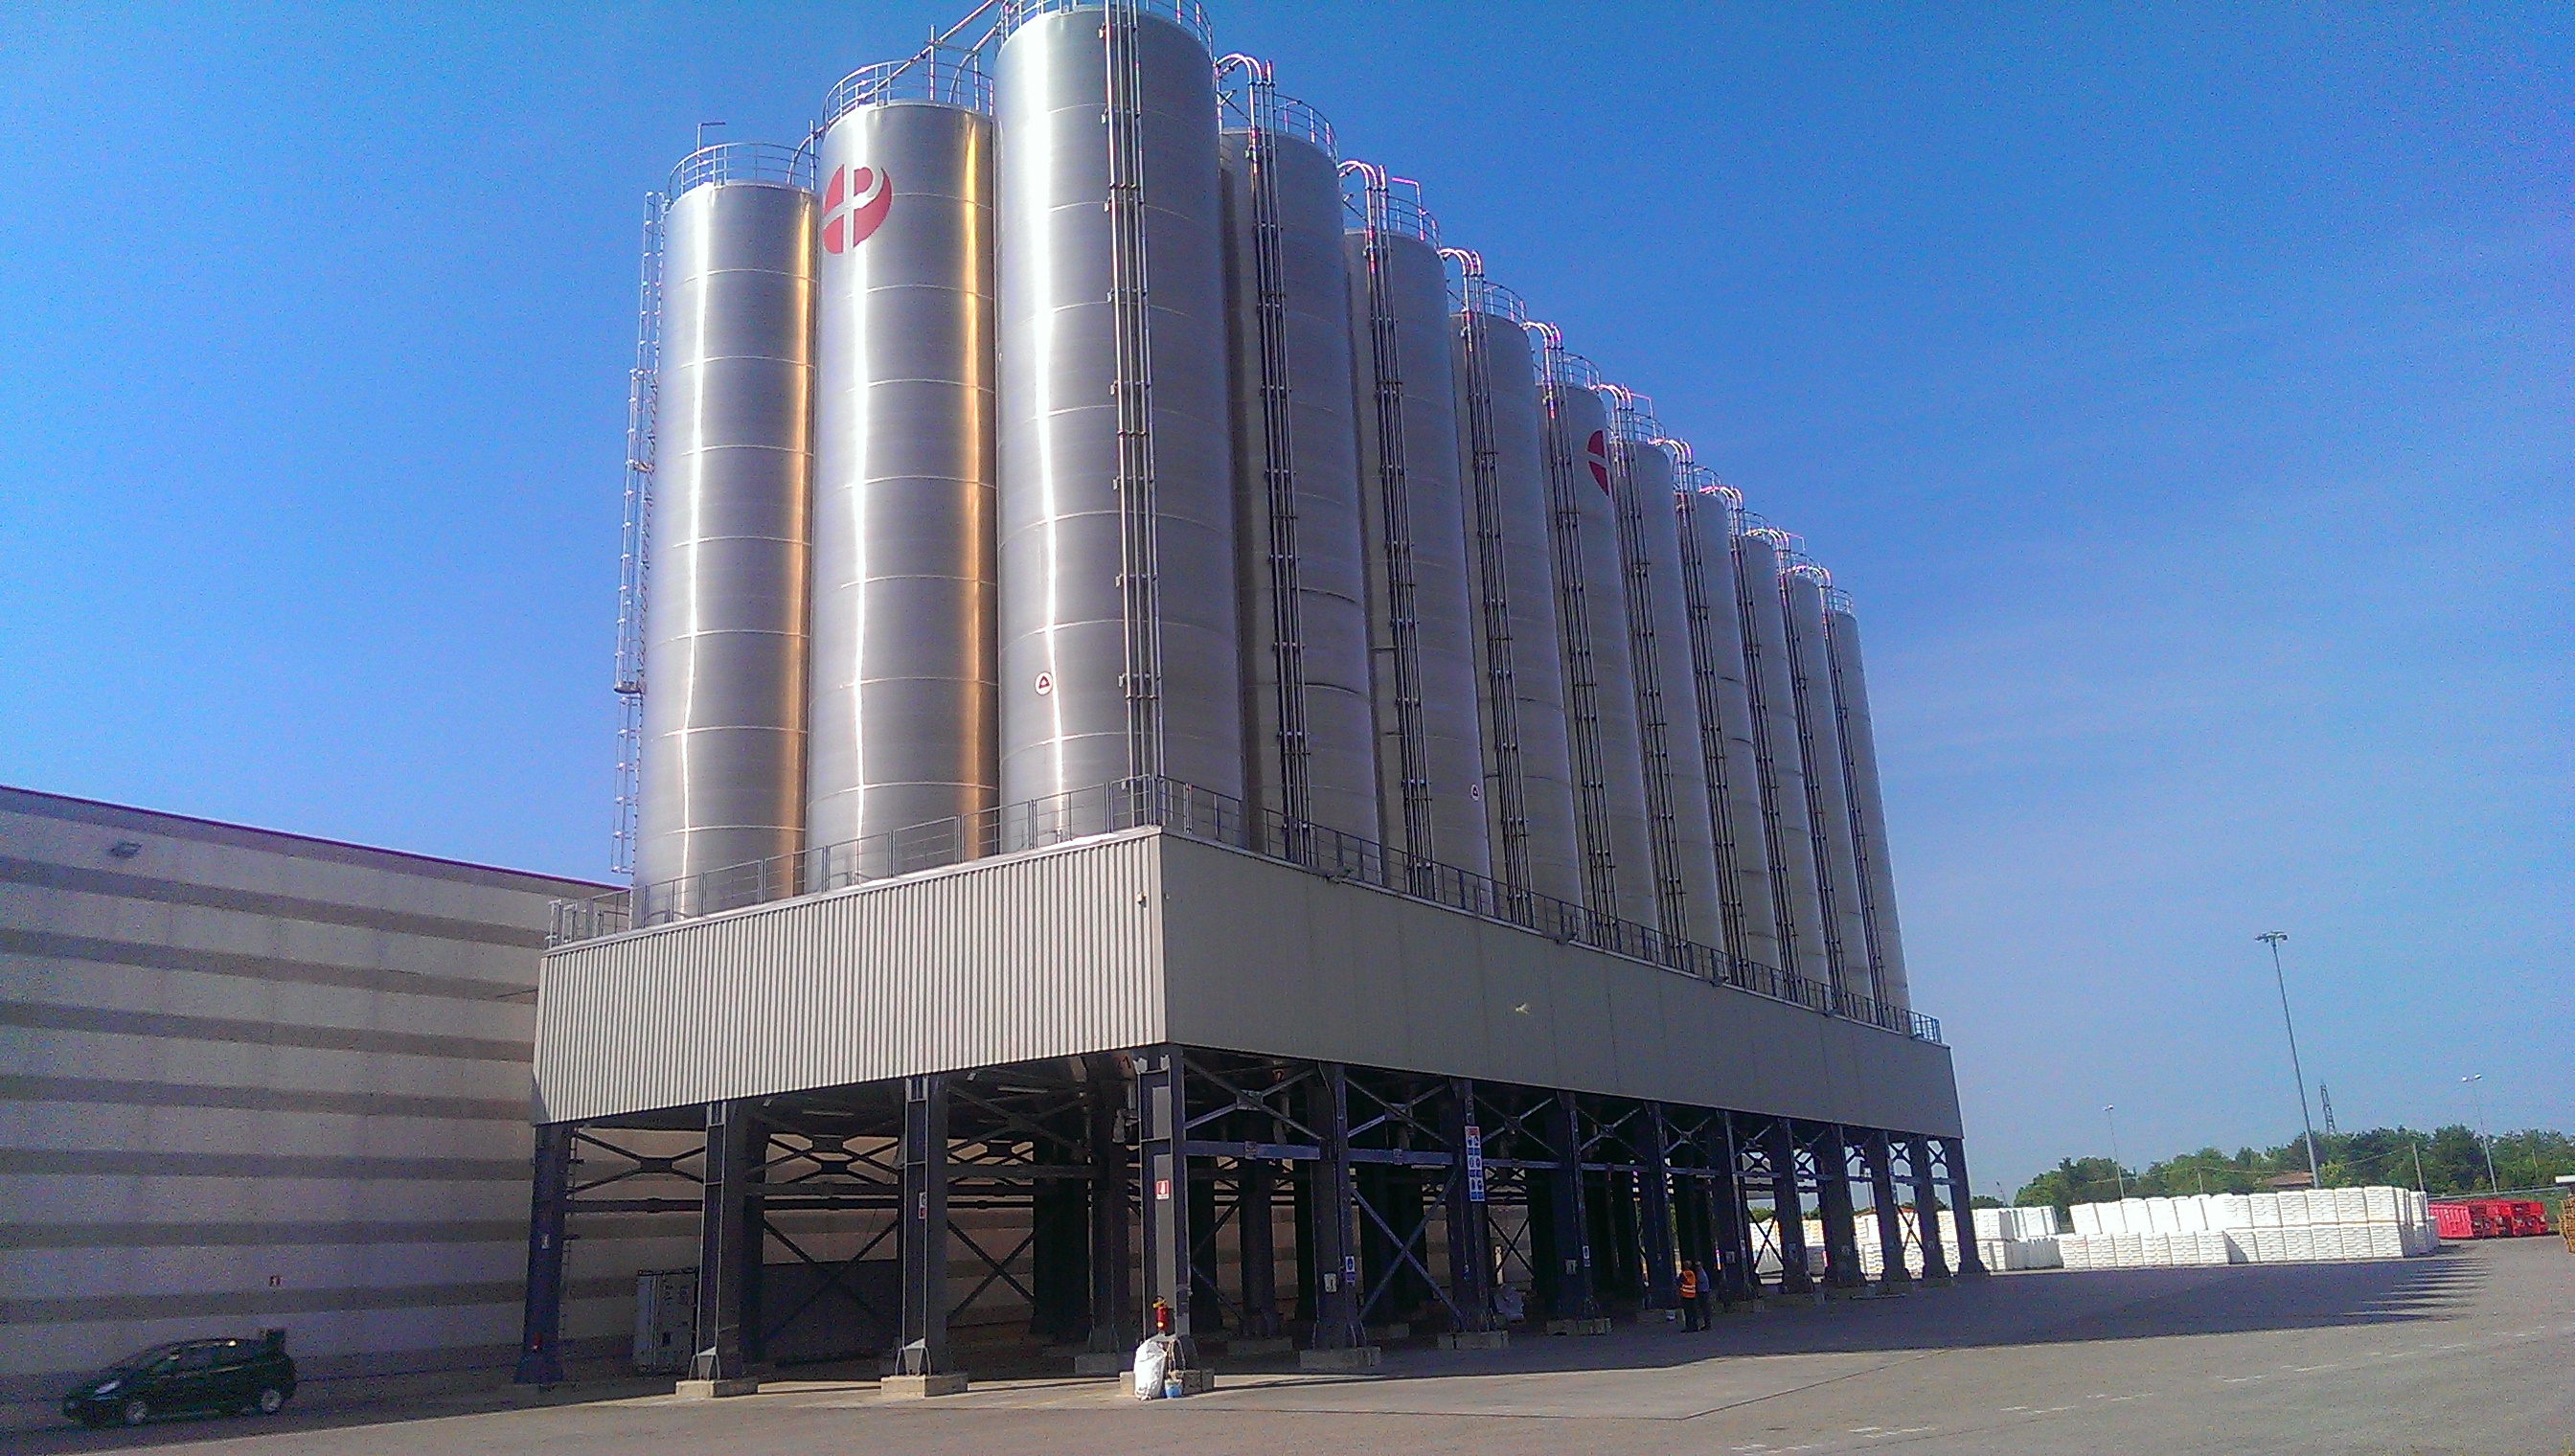 LARGE STORAGE PLANTS FOR RAW MATERIAL DISTRIBUTORS